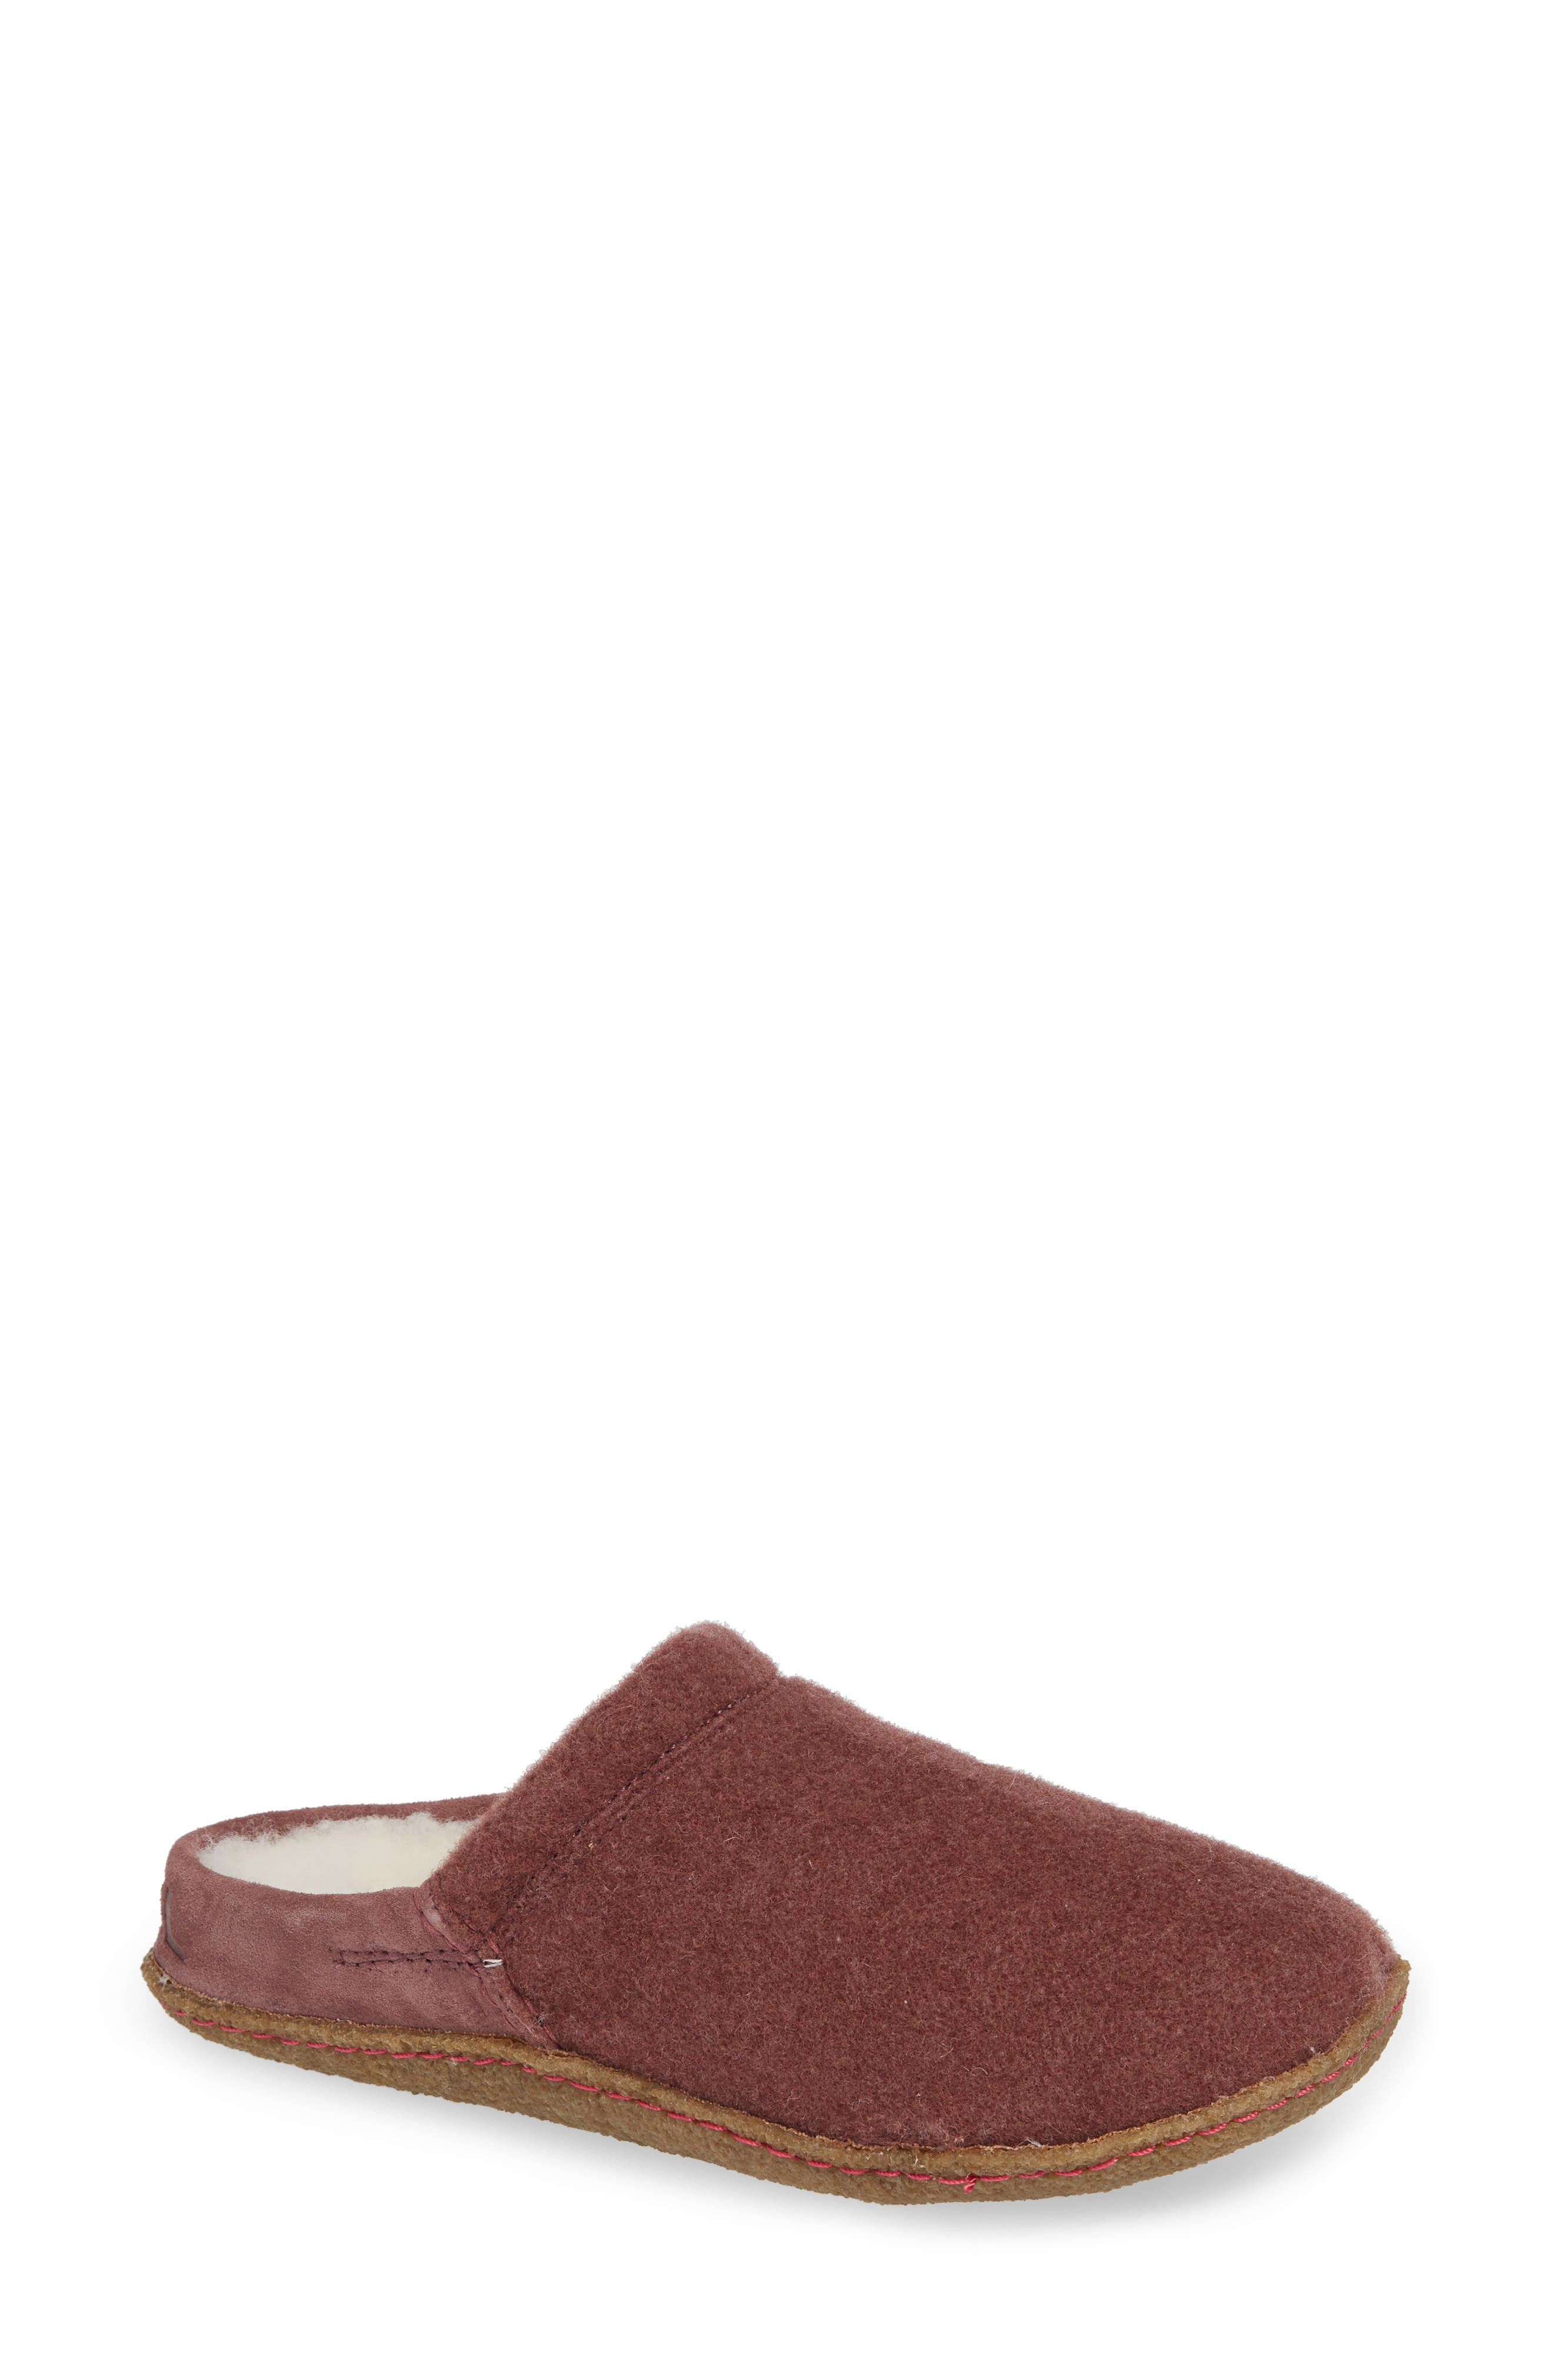 d00f6047e48 Women s SOREL Slippers